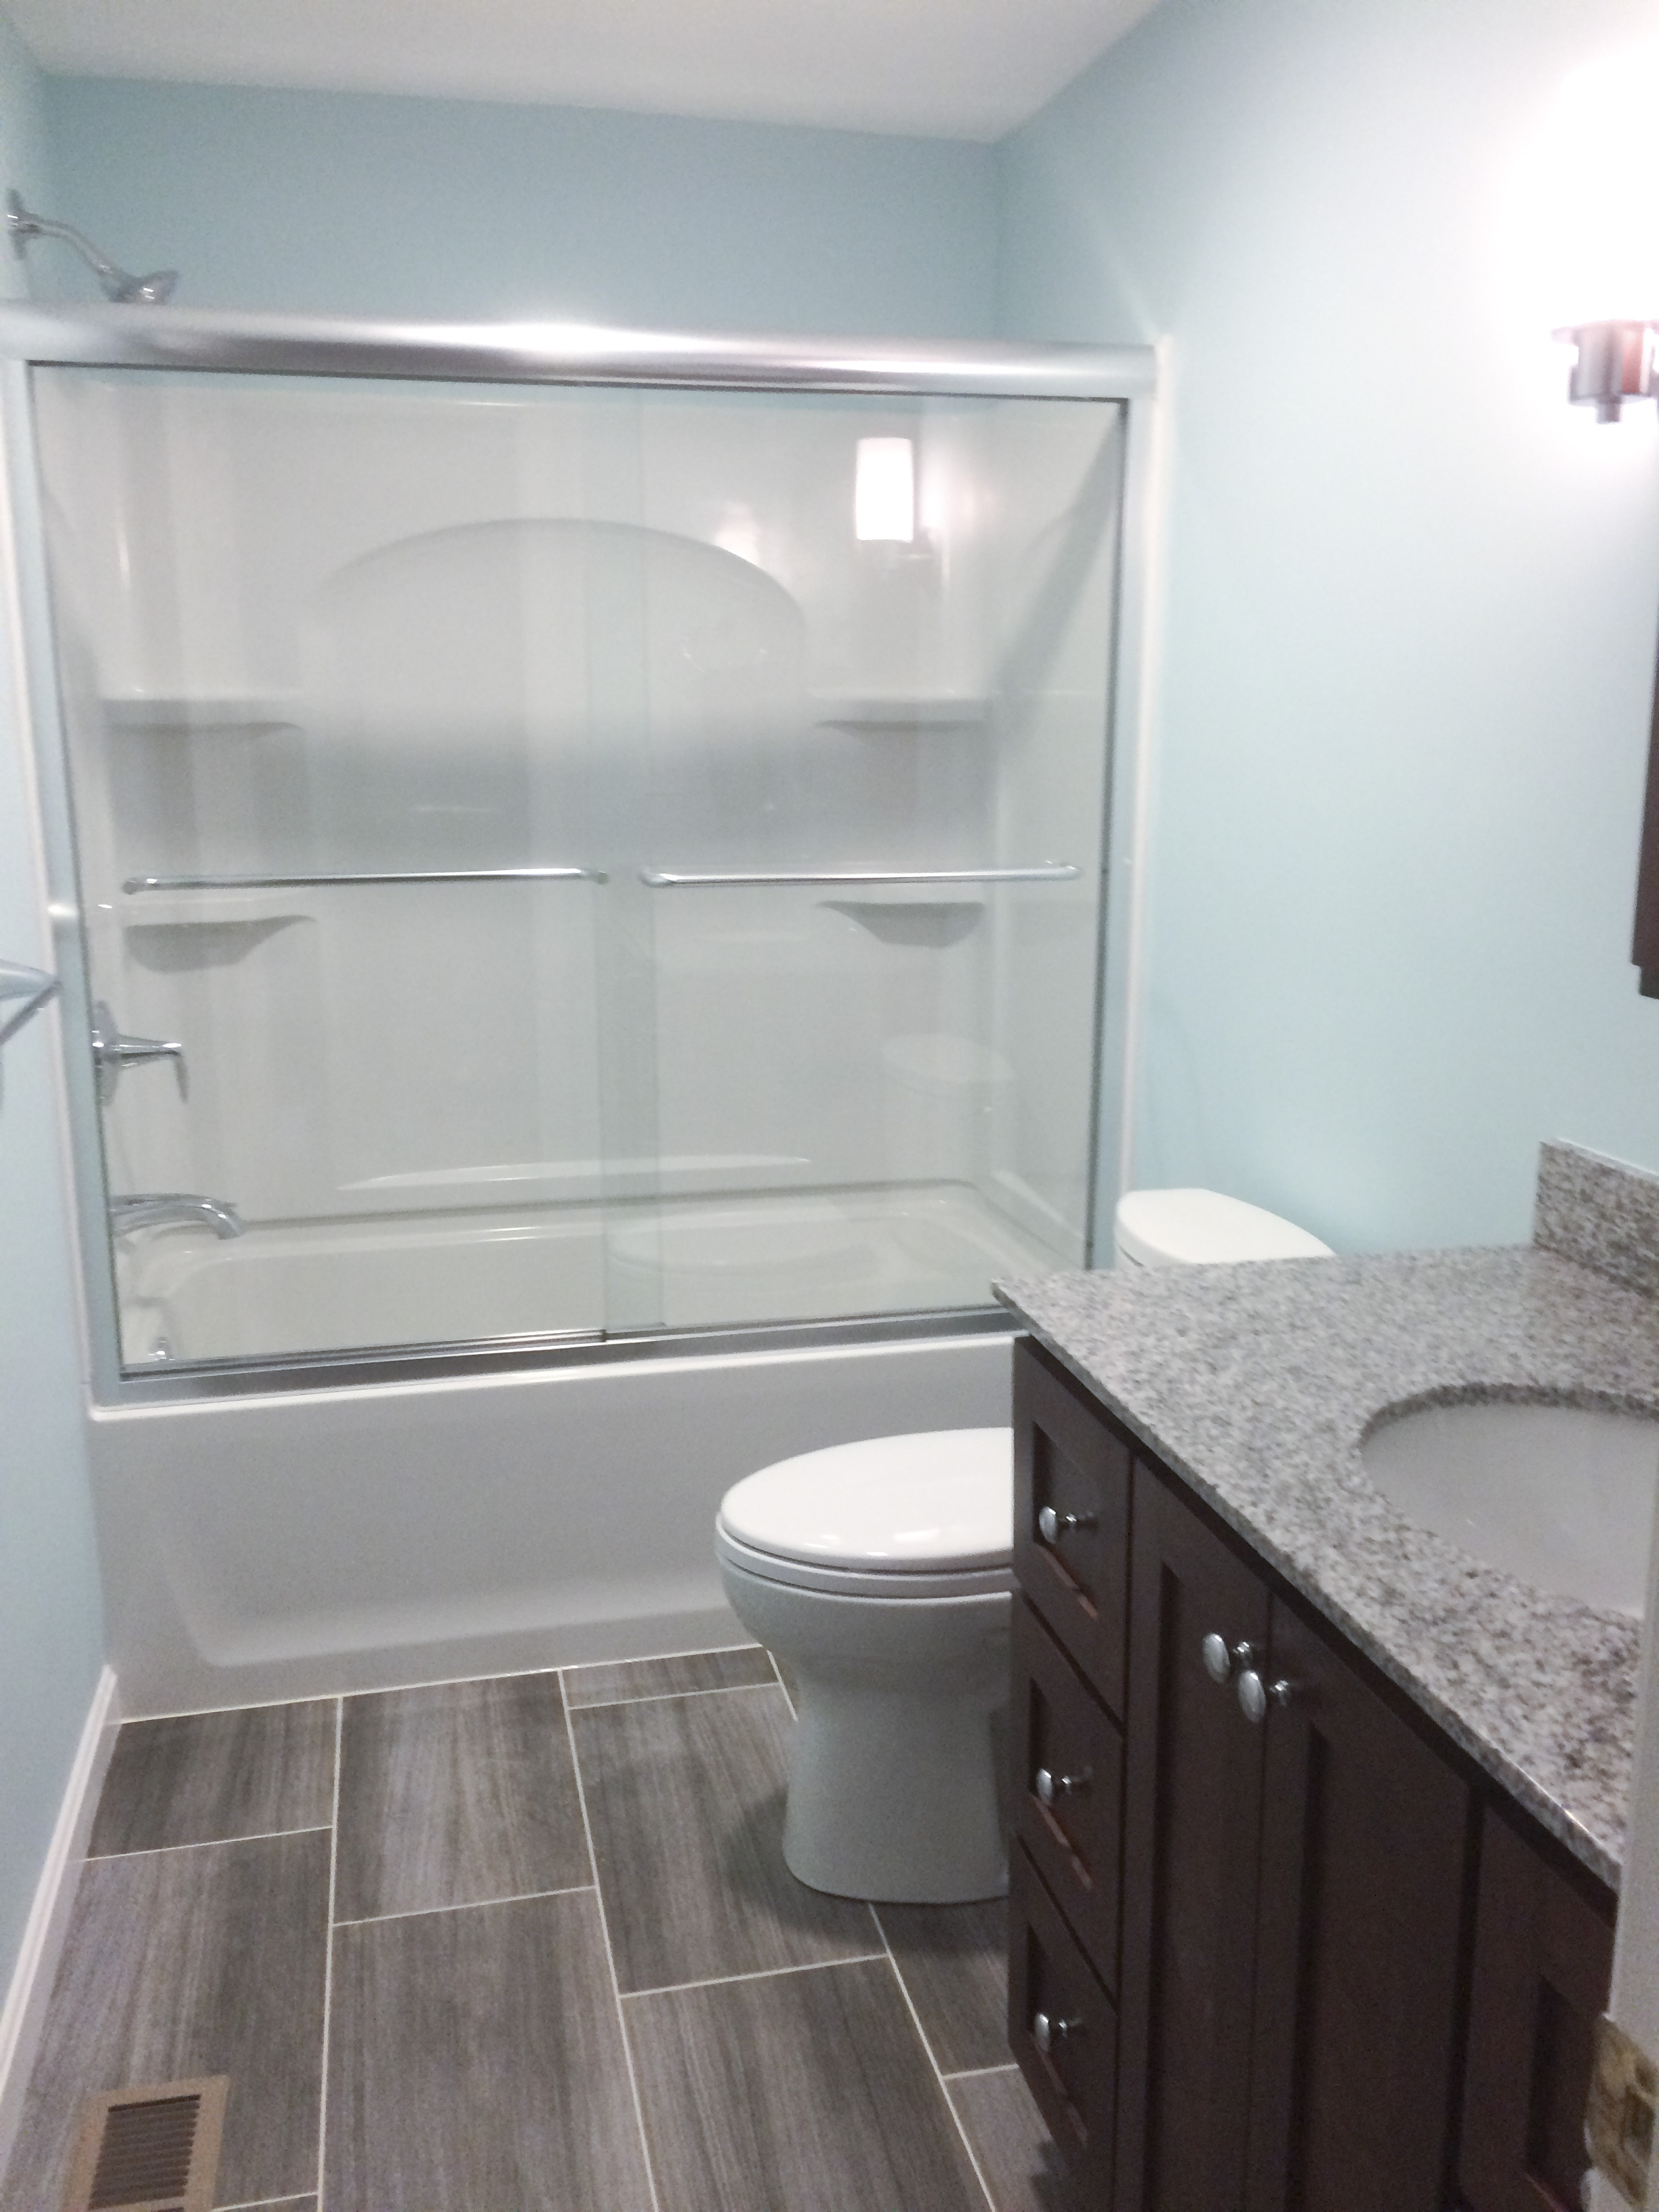 Custom Bathroom Vanities Nh recent bathroom remodels | nh bath builders